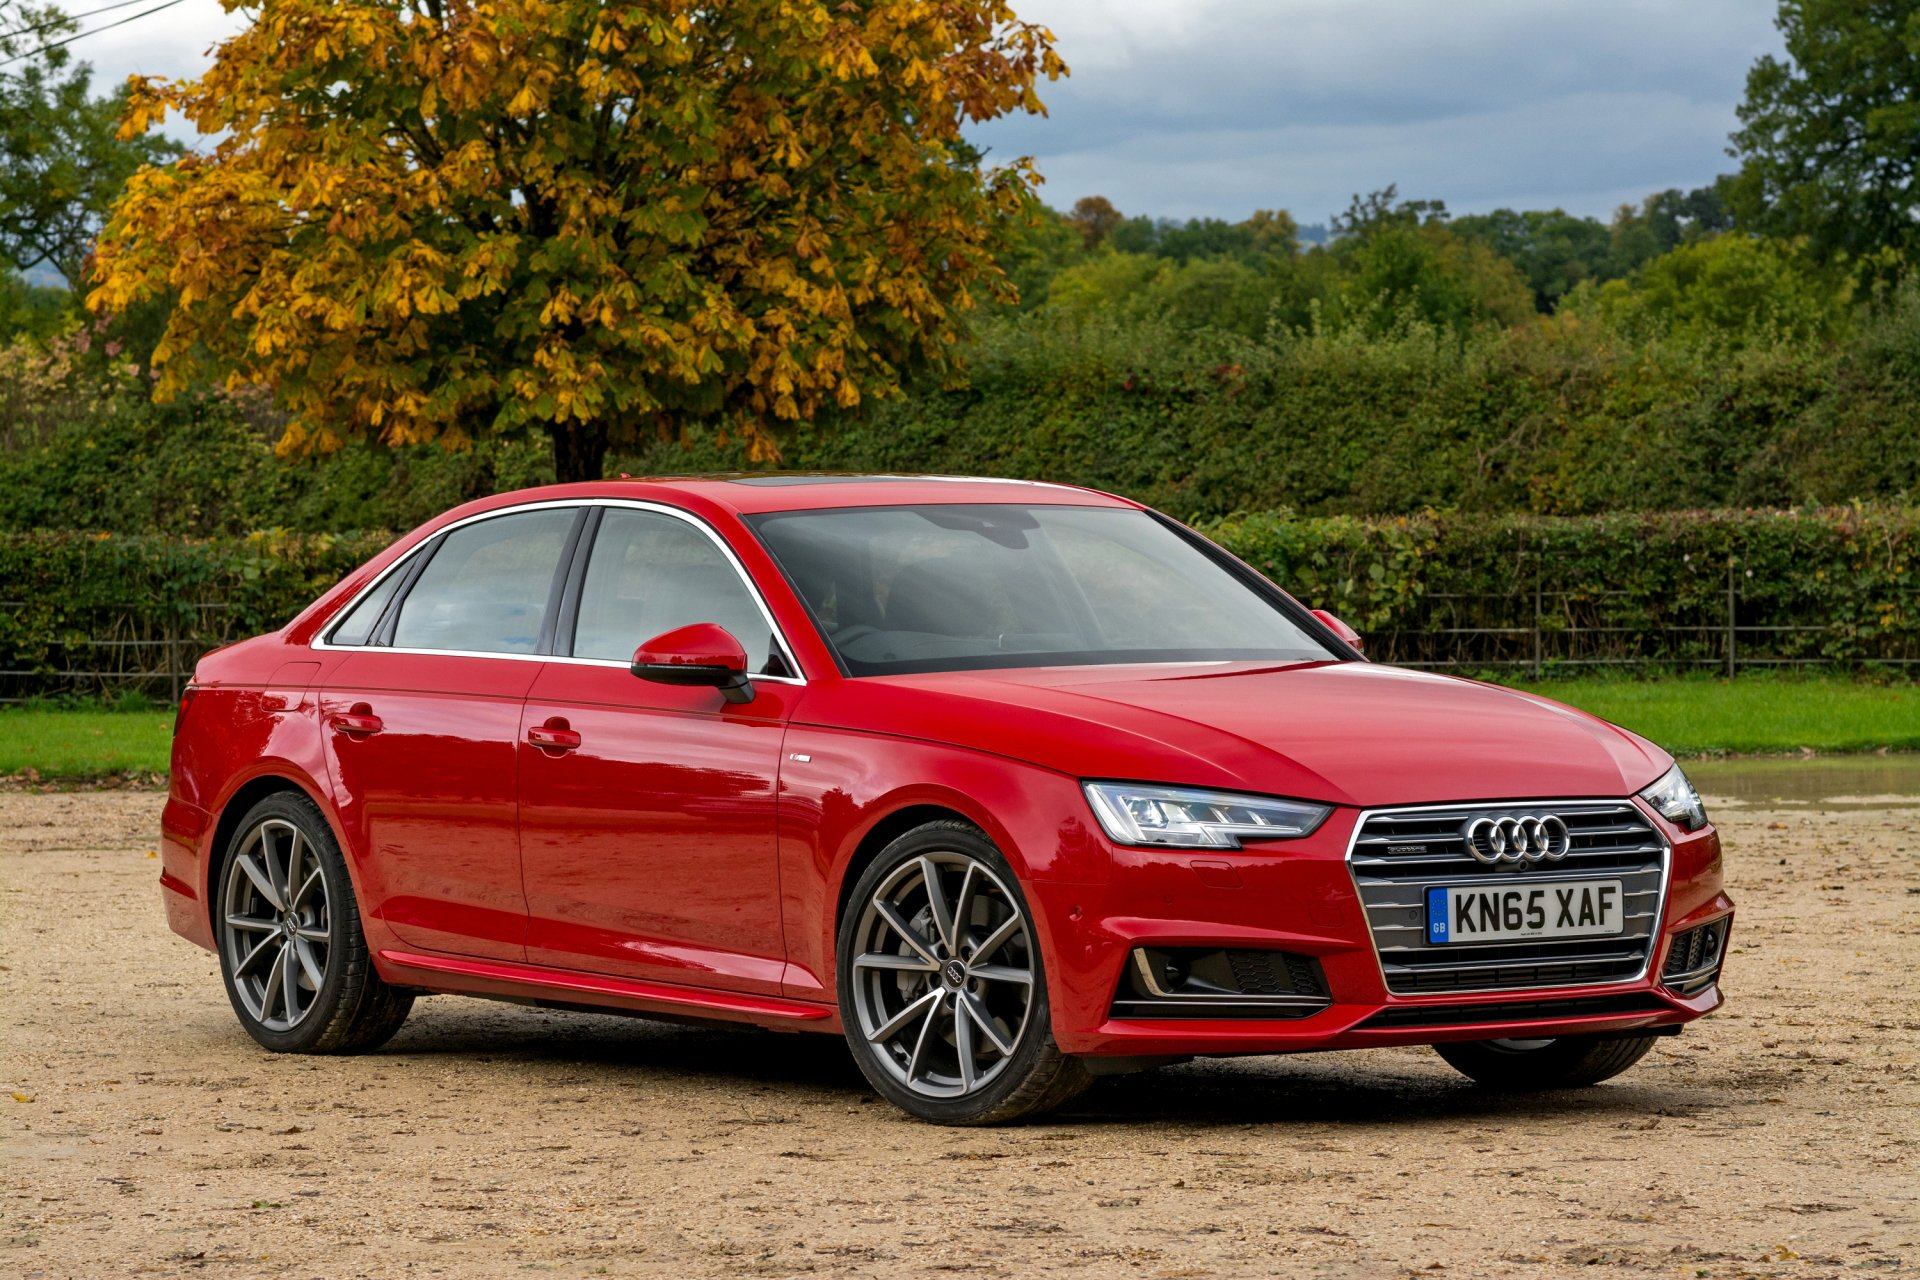 Vehicles - Audi A4  Audi Red Car Car Vehicle Wallpaper